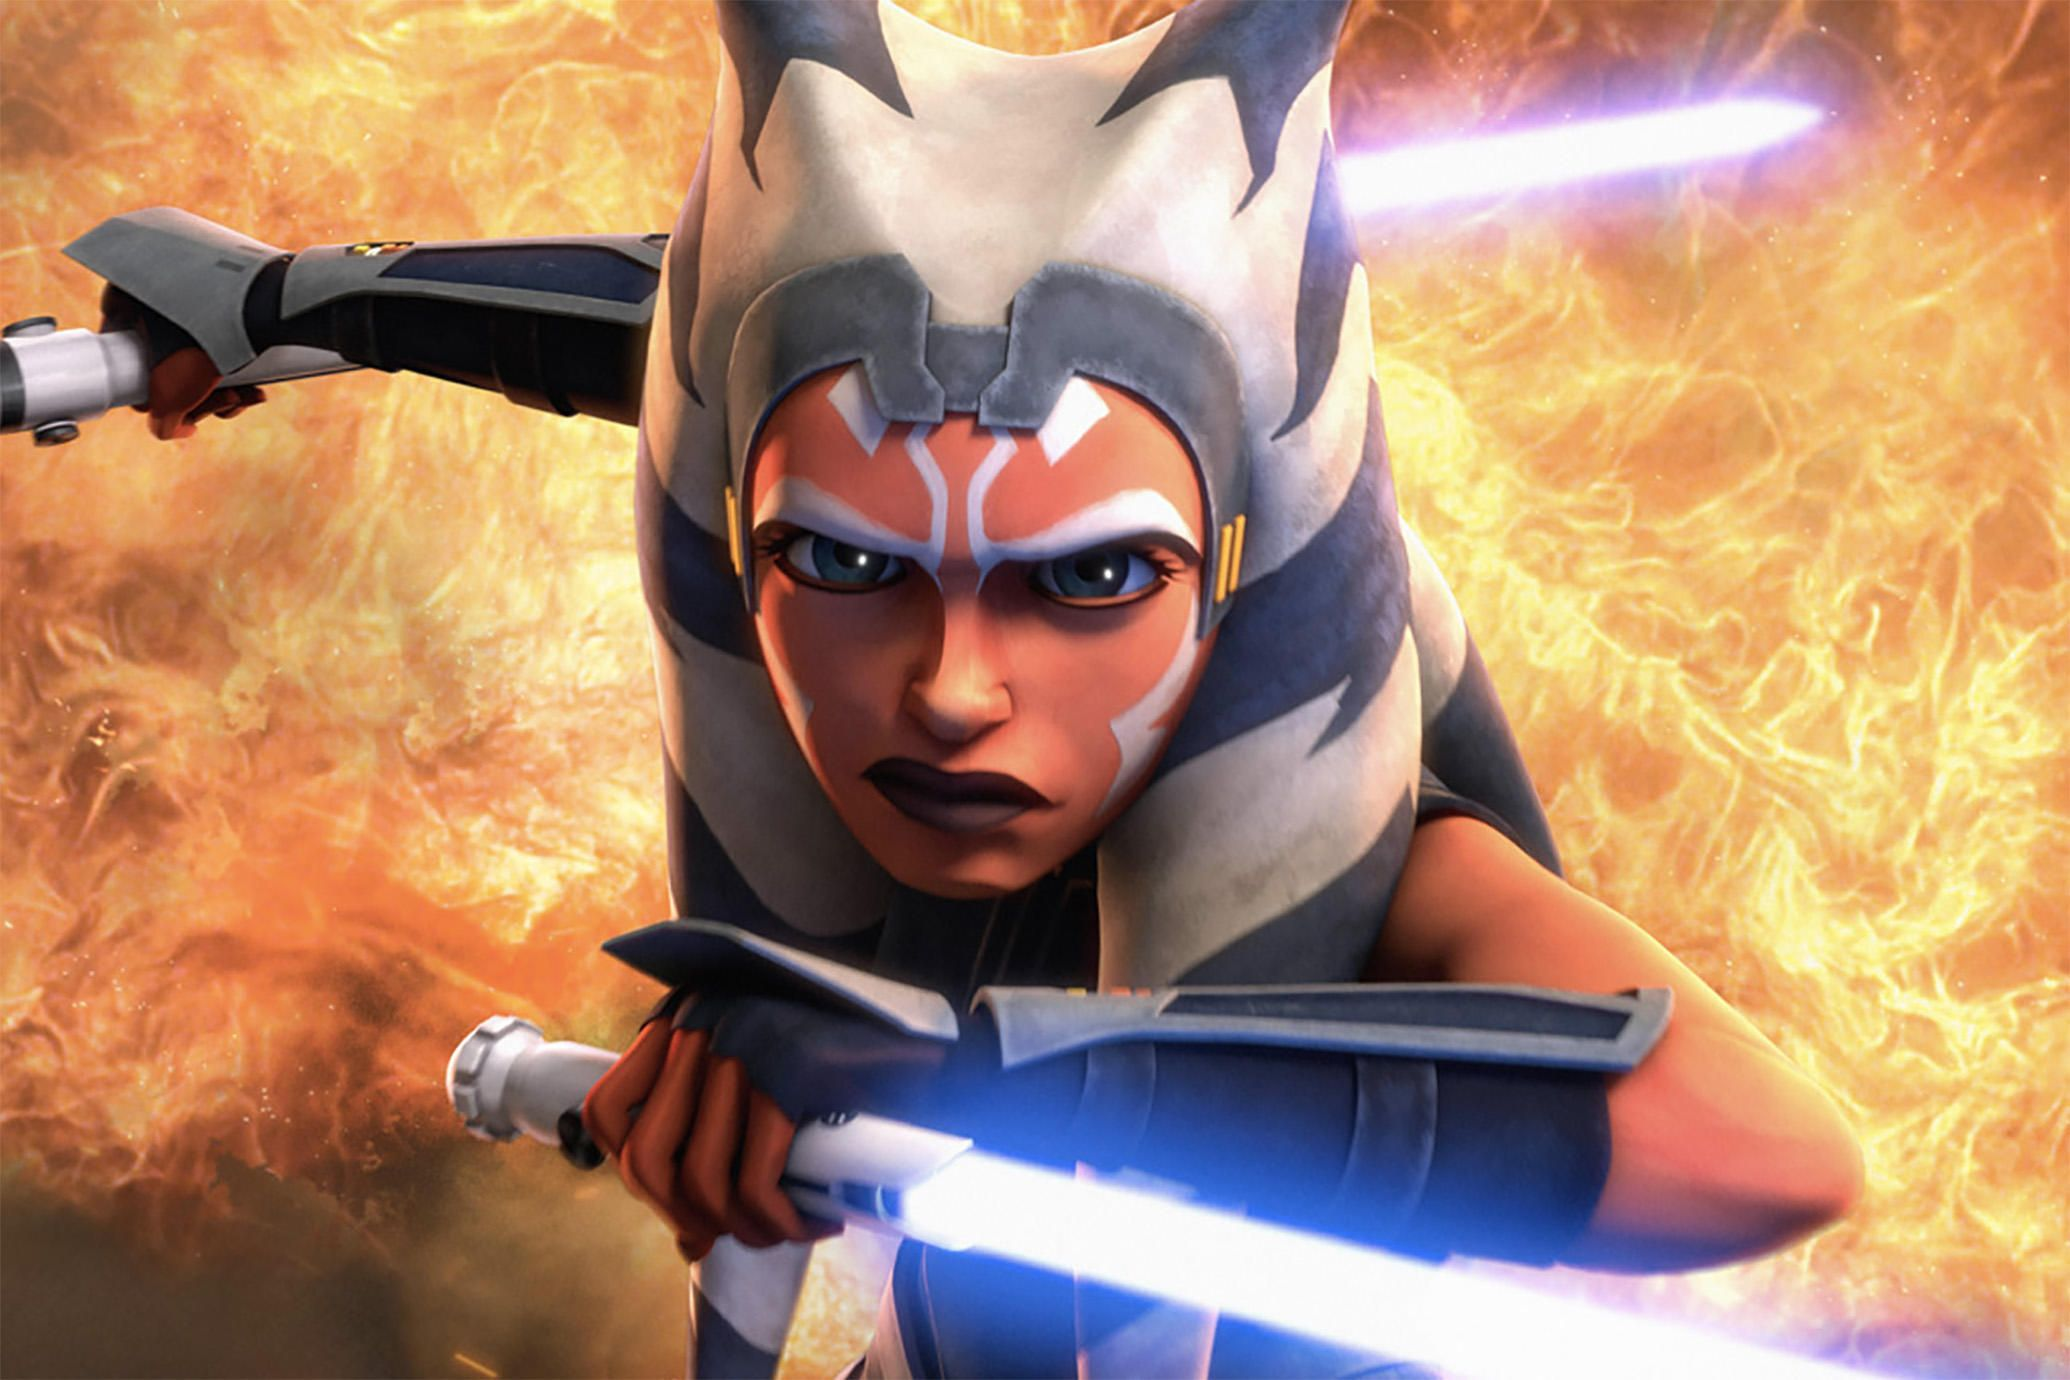 The New Season Of Star Wars The Clone Wars Has A Premiere Date On